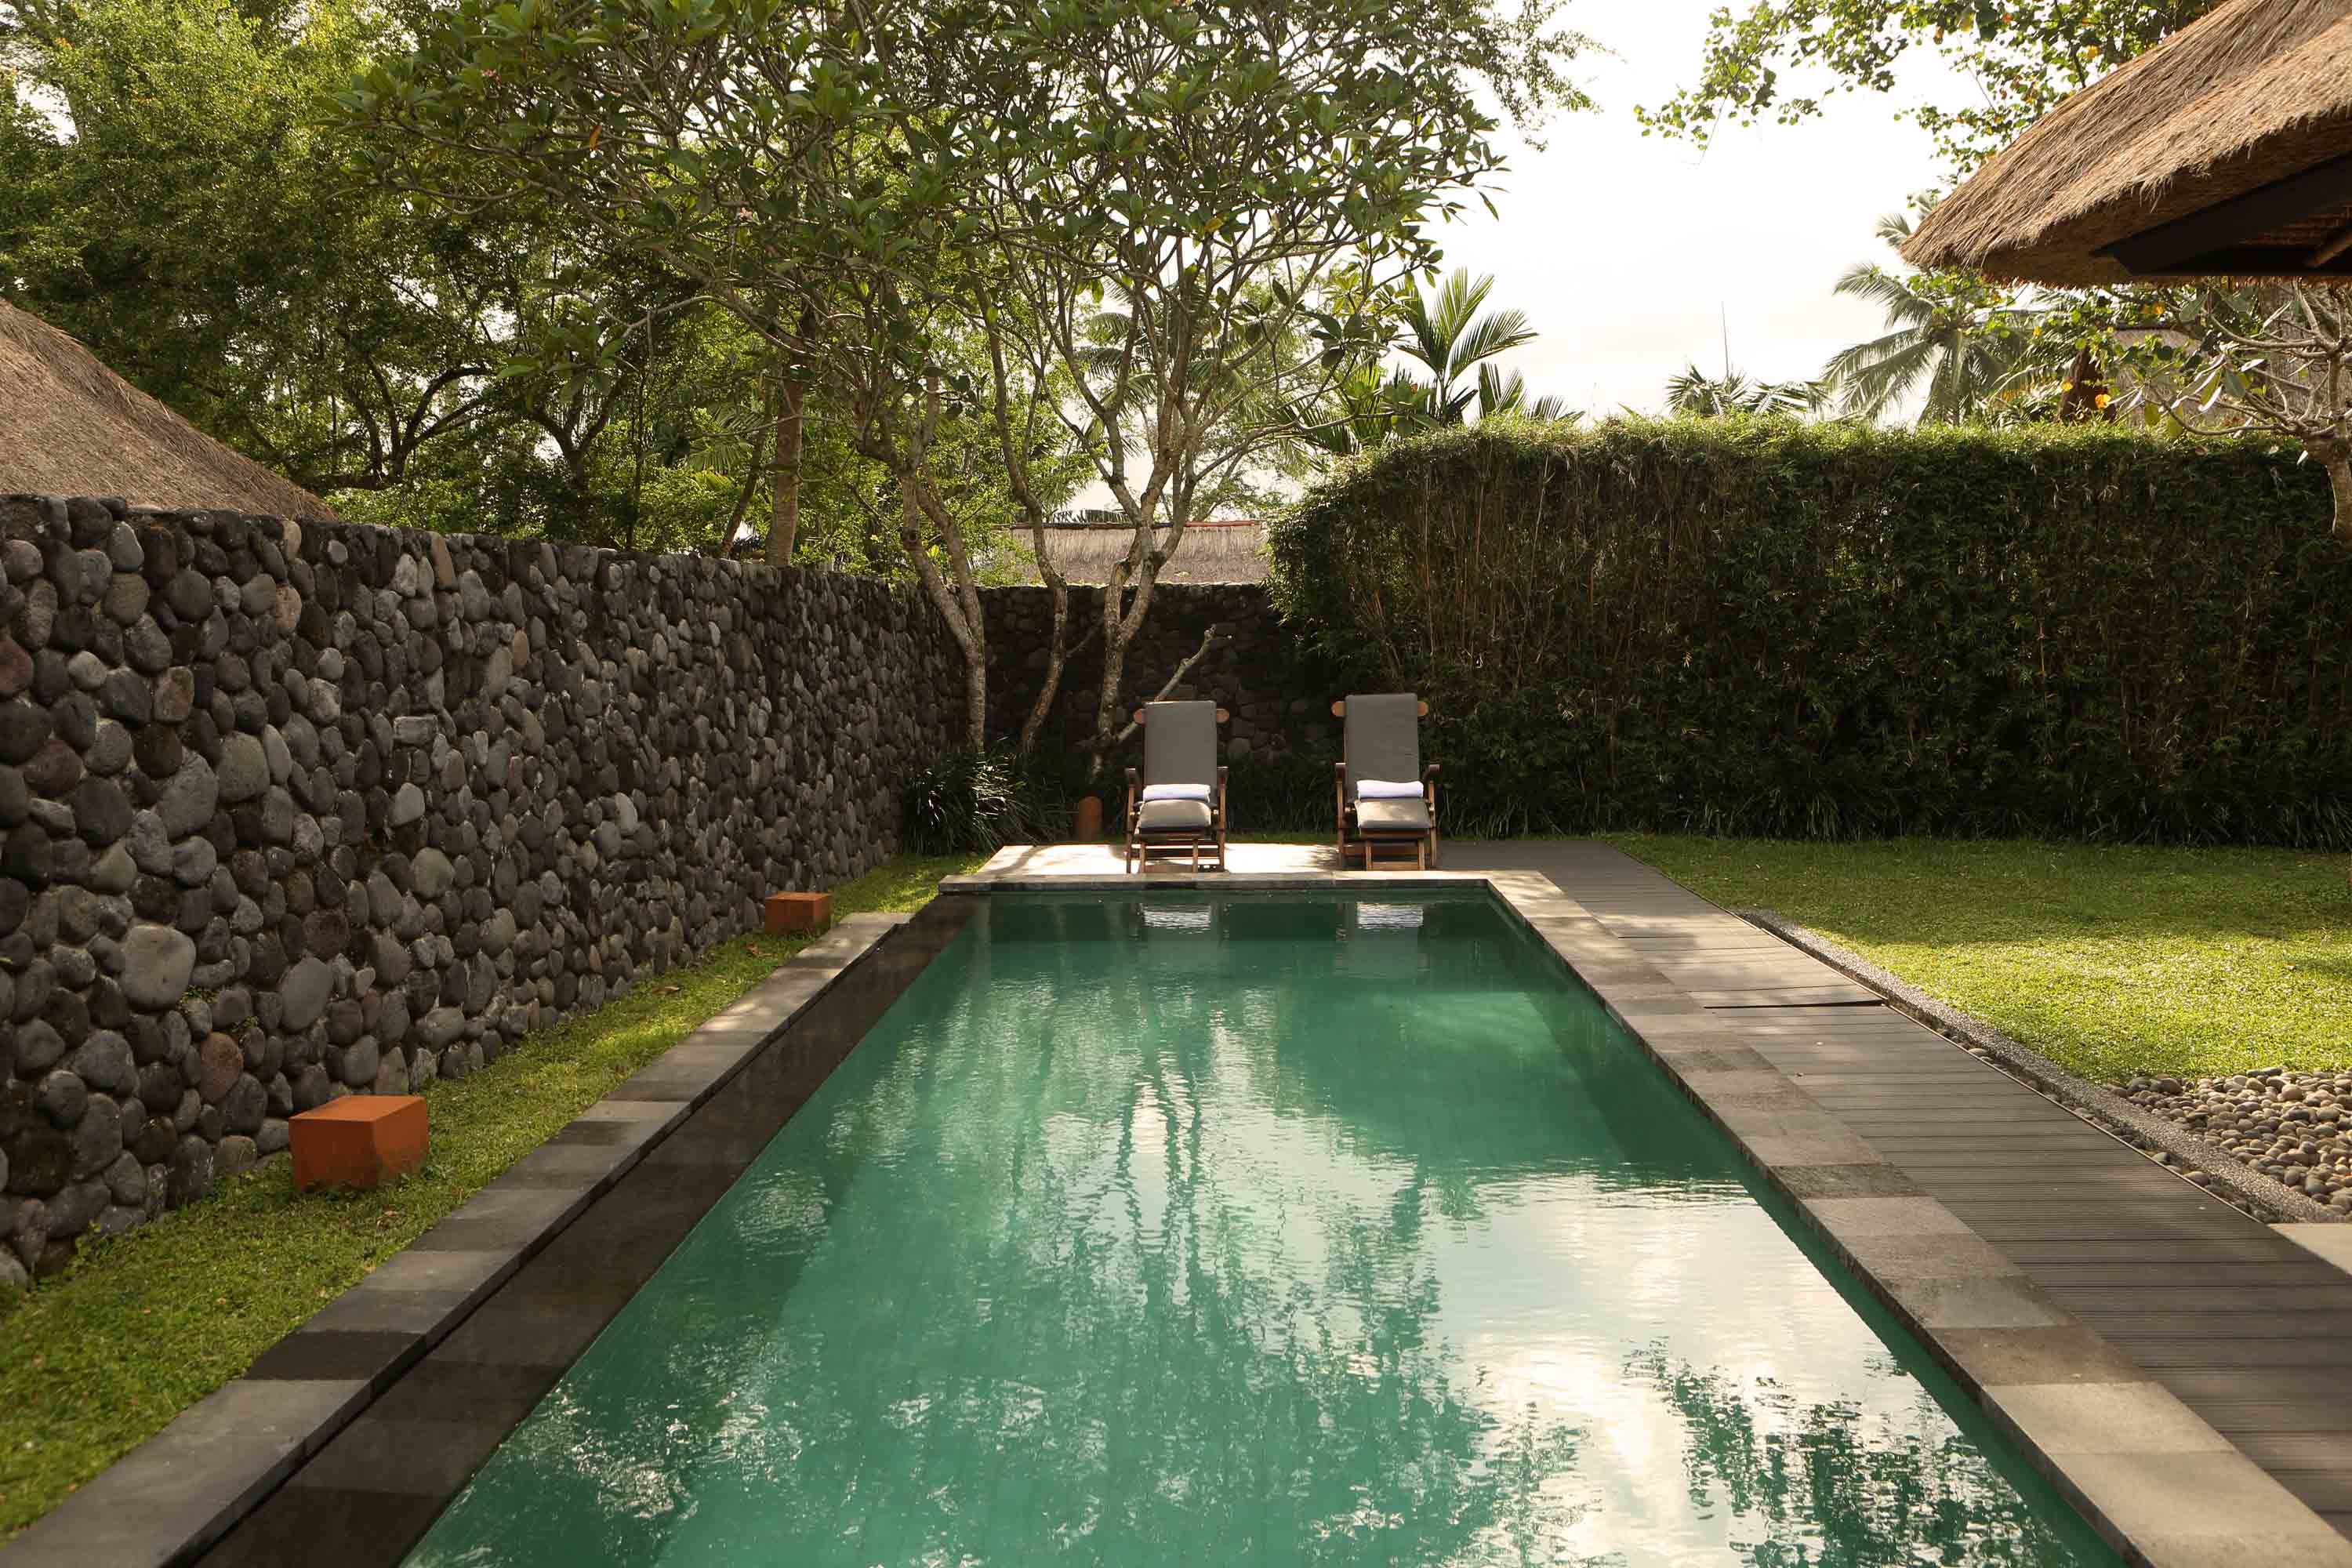 Pool villa ubud alila ubud pool villa luxury hotels for Garden pool villa ubud